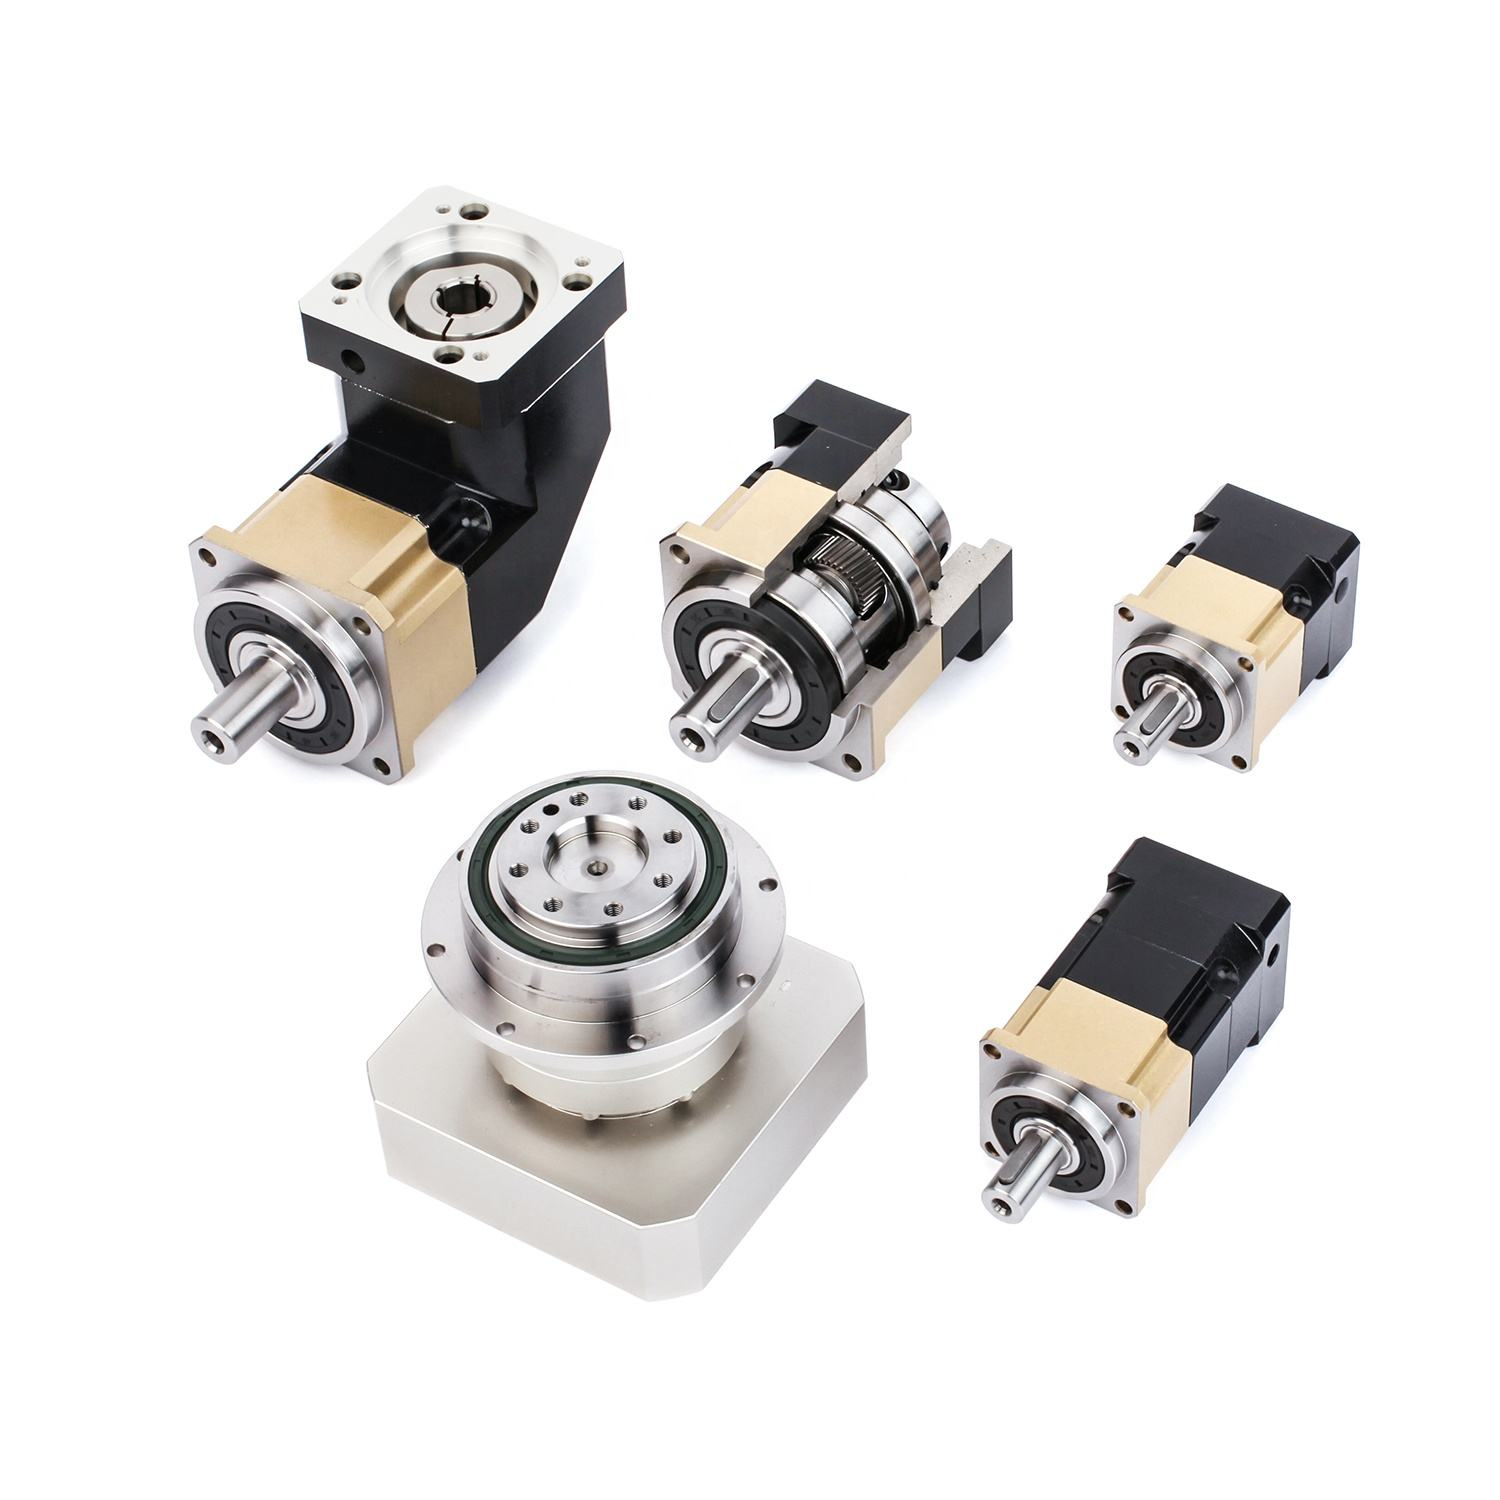 cnc high torque precision small mini micro planetary gearbox design